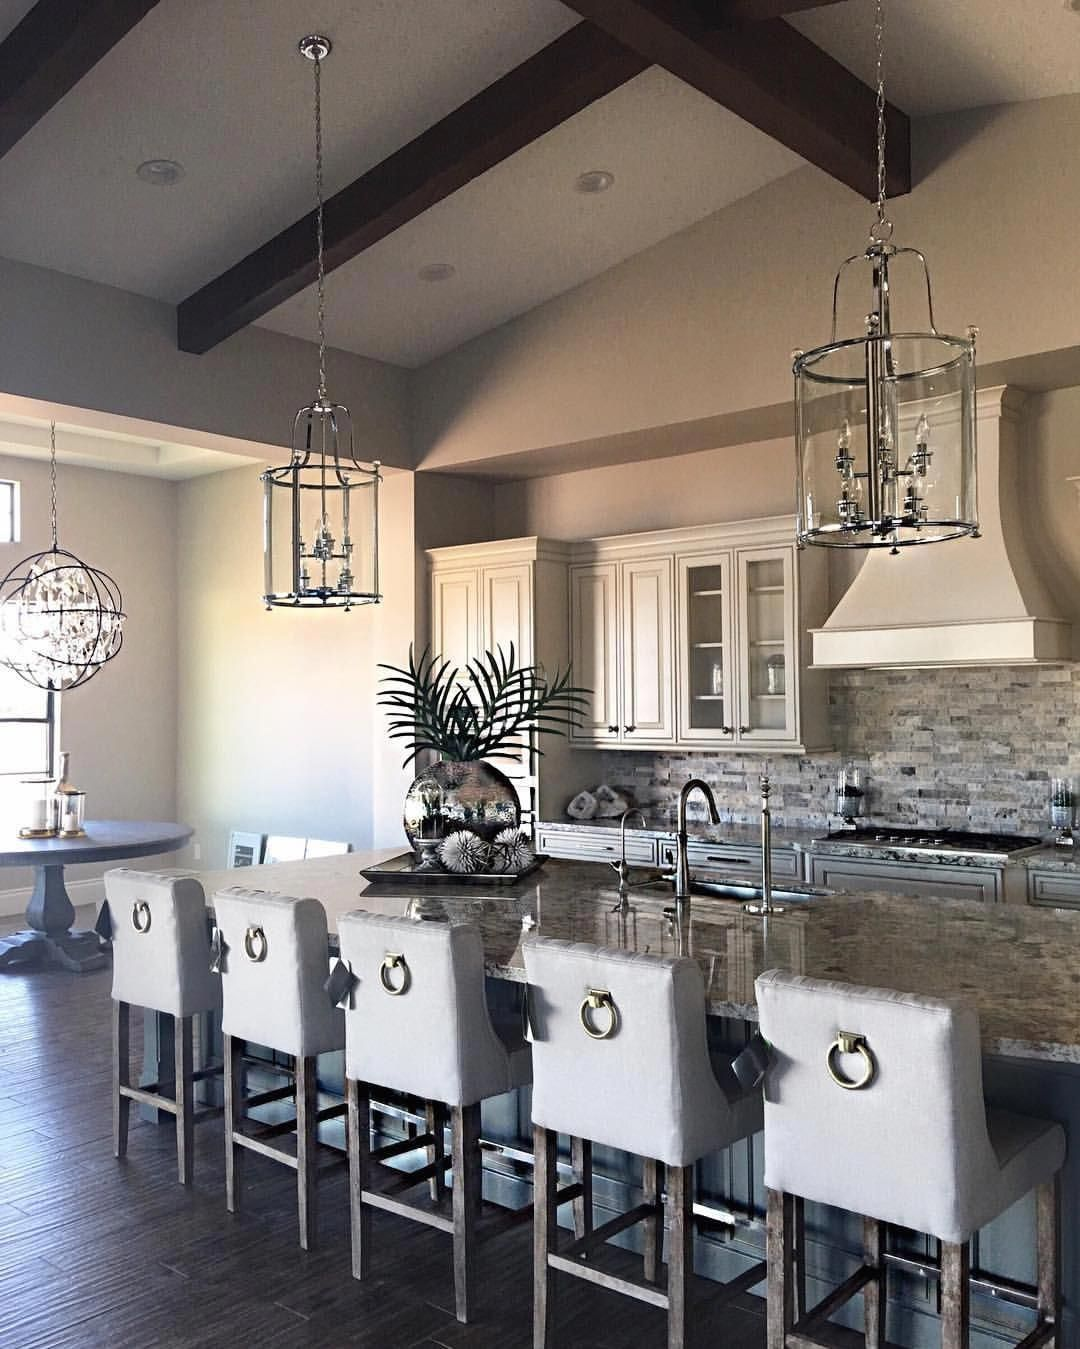 Get Home Design Ideas: Feels Like We Are Never Going To Be In Our New House ! As A